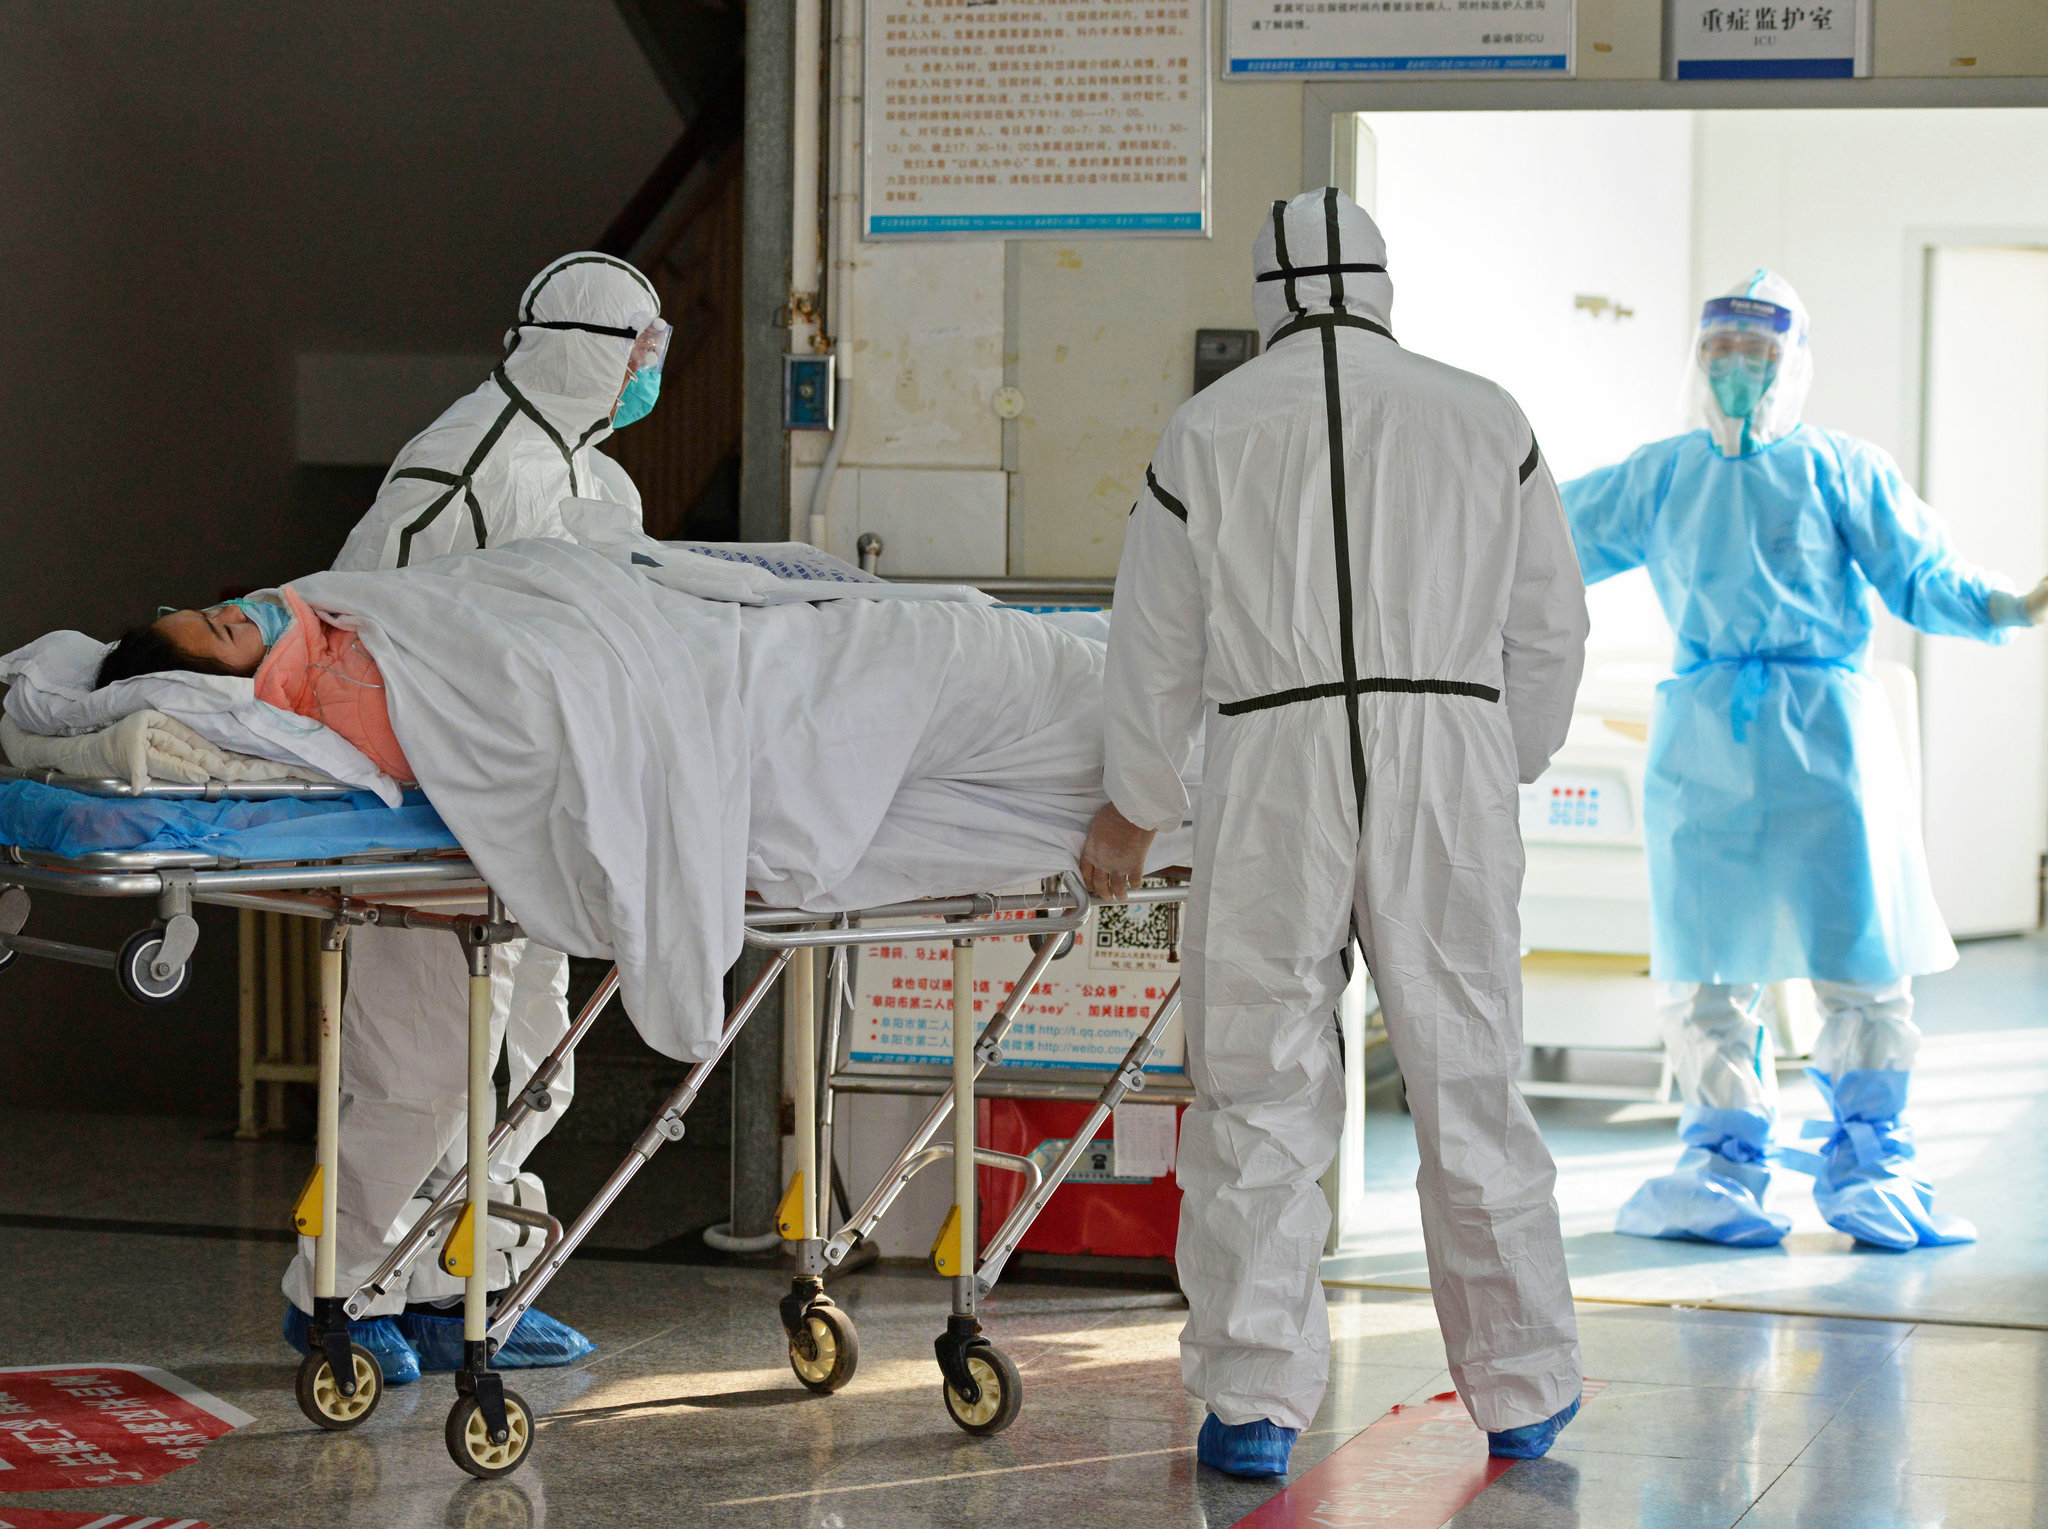 Wuhan Coronavirus Looks Increasingly Like a Pandemic, Experts Say ...